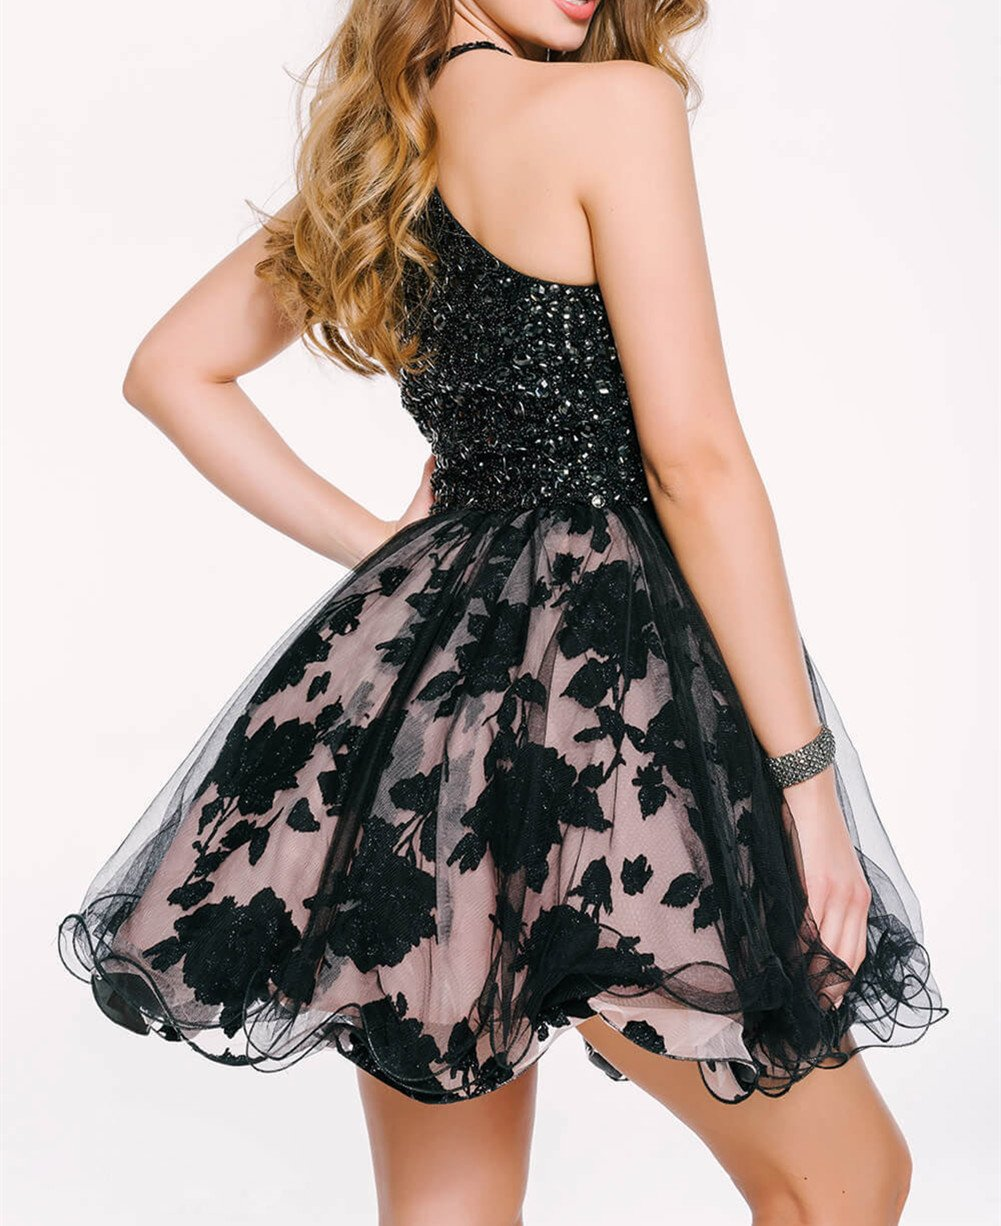 Tdress Girl's Scoop A Line Beaded Homecoming Dresses Size 8 by Tdress (Image #2)